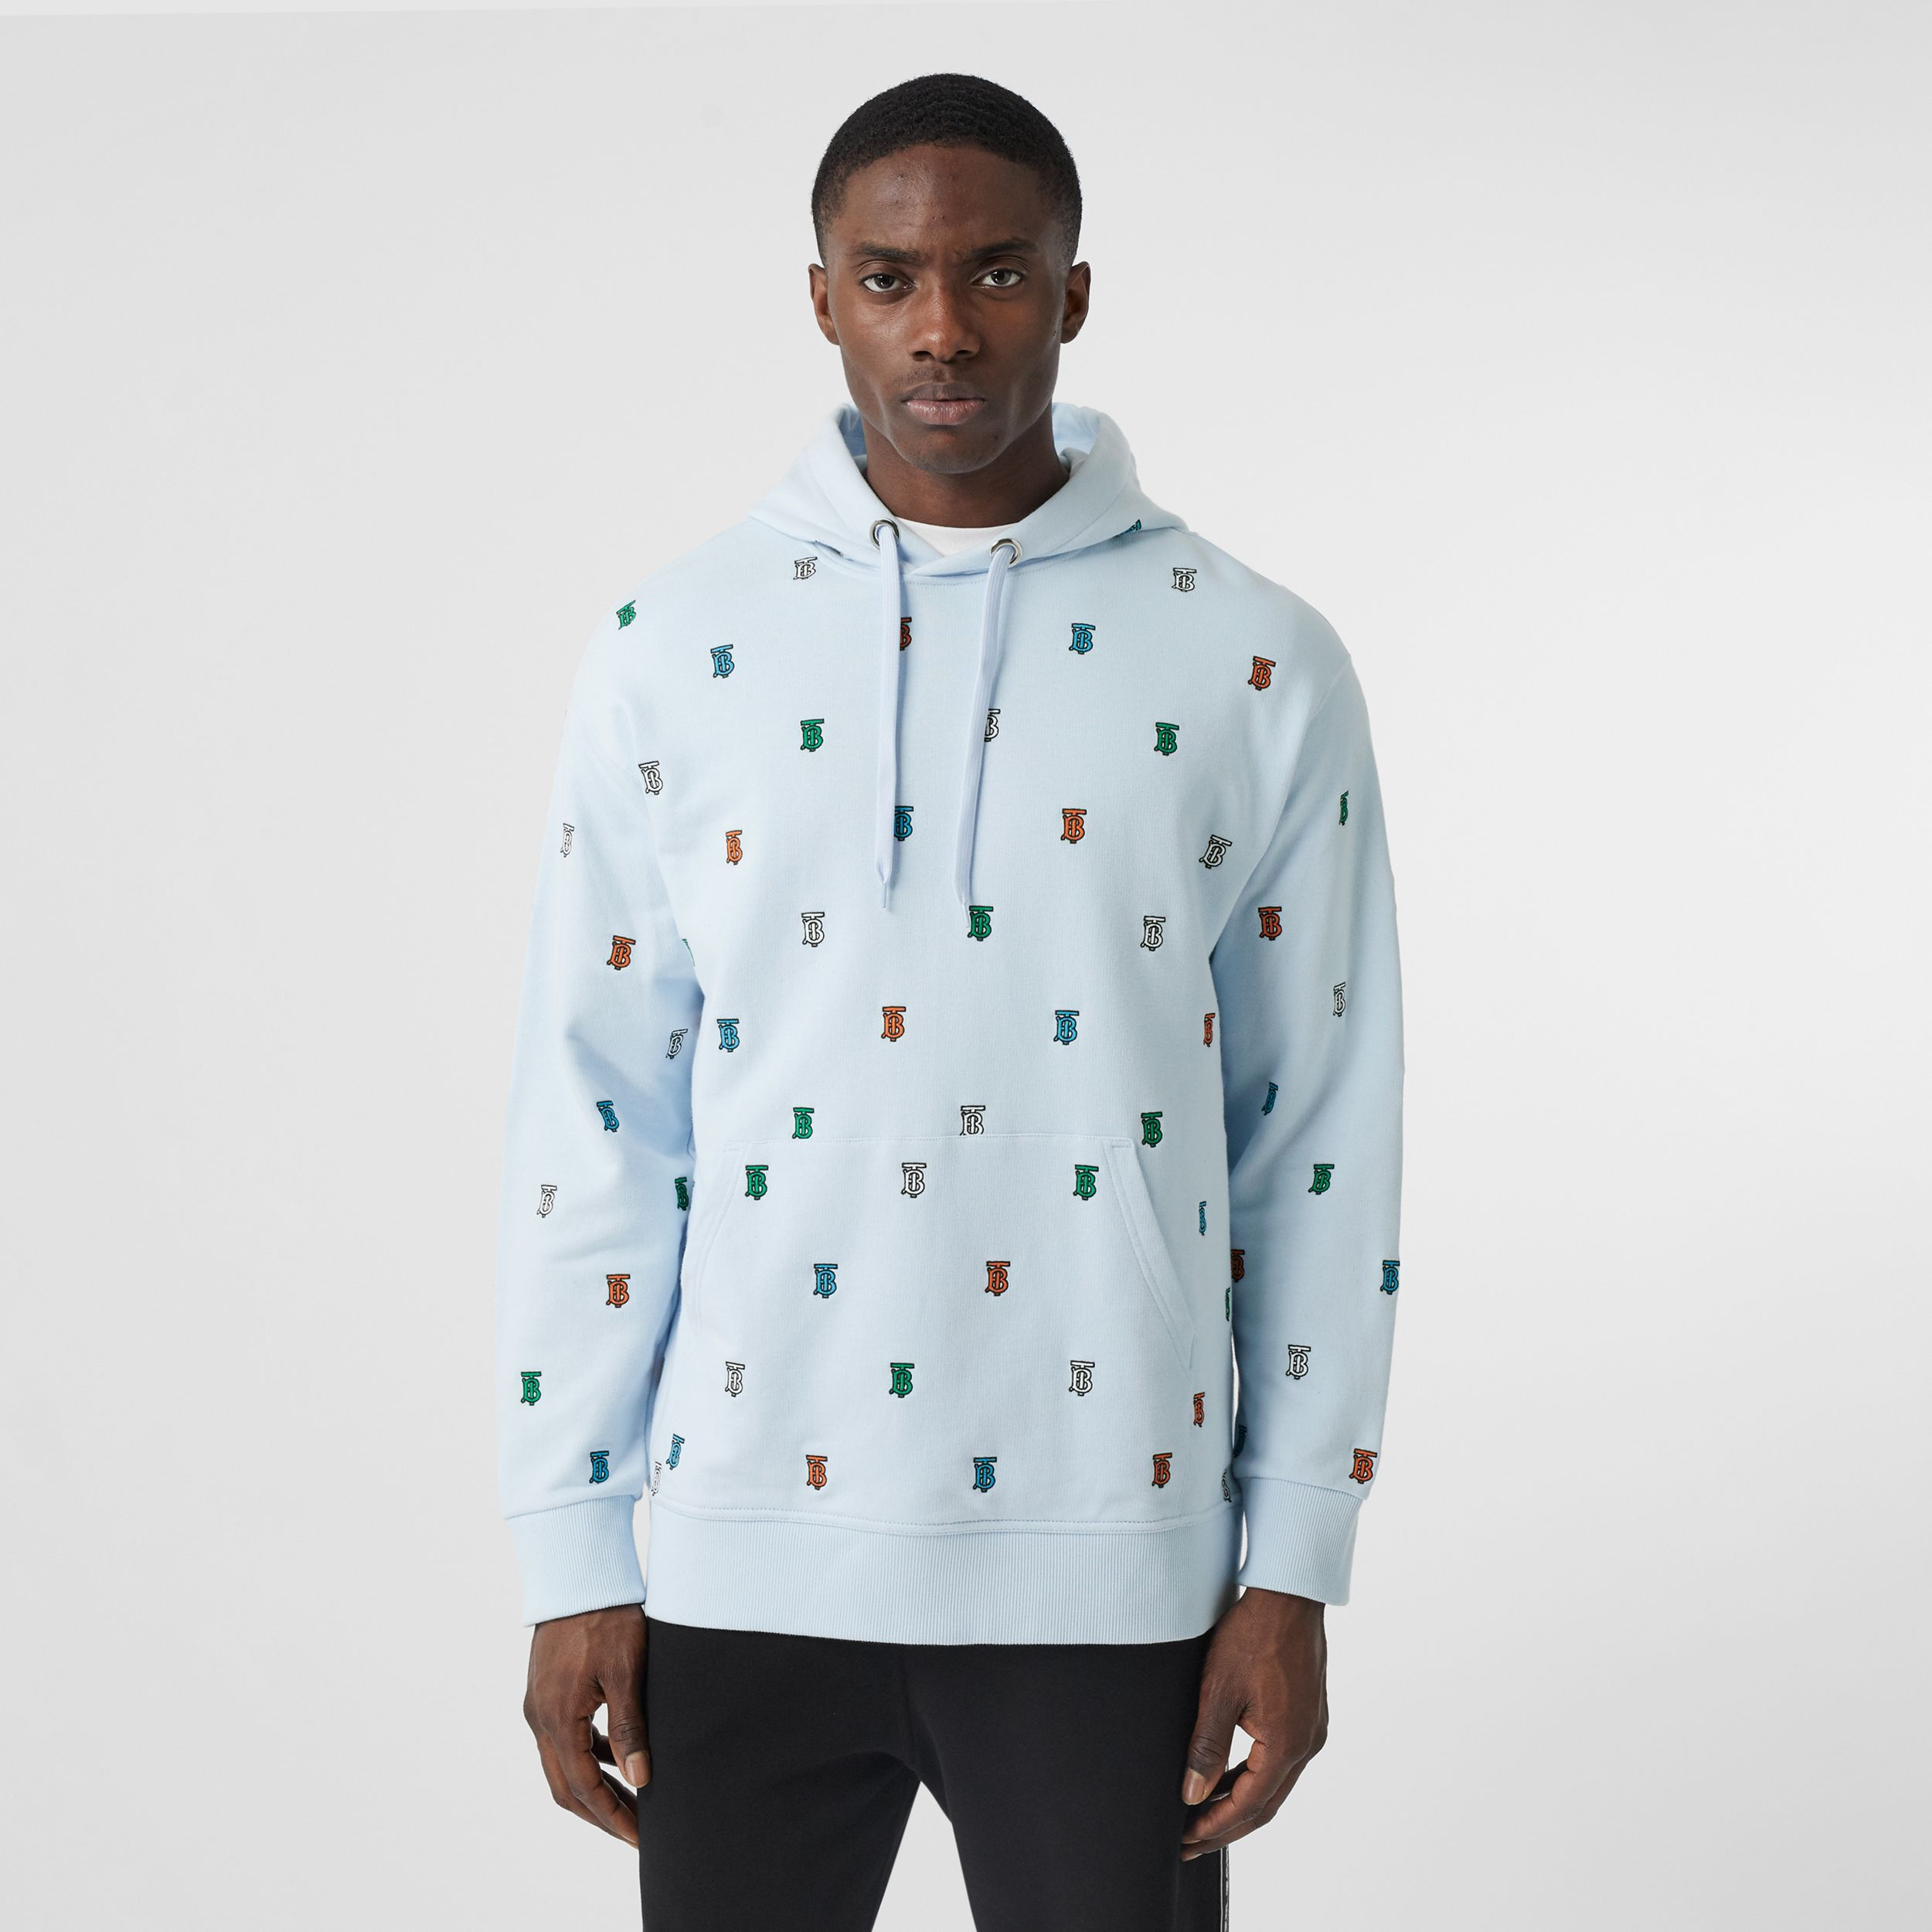 Monogram Motif Cotton Hoodie in Pale Blue - Men | Burberry - 1